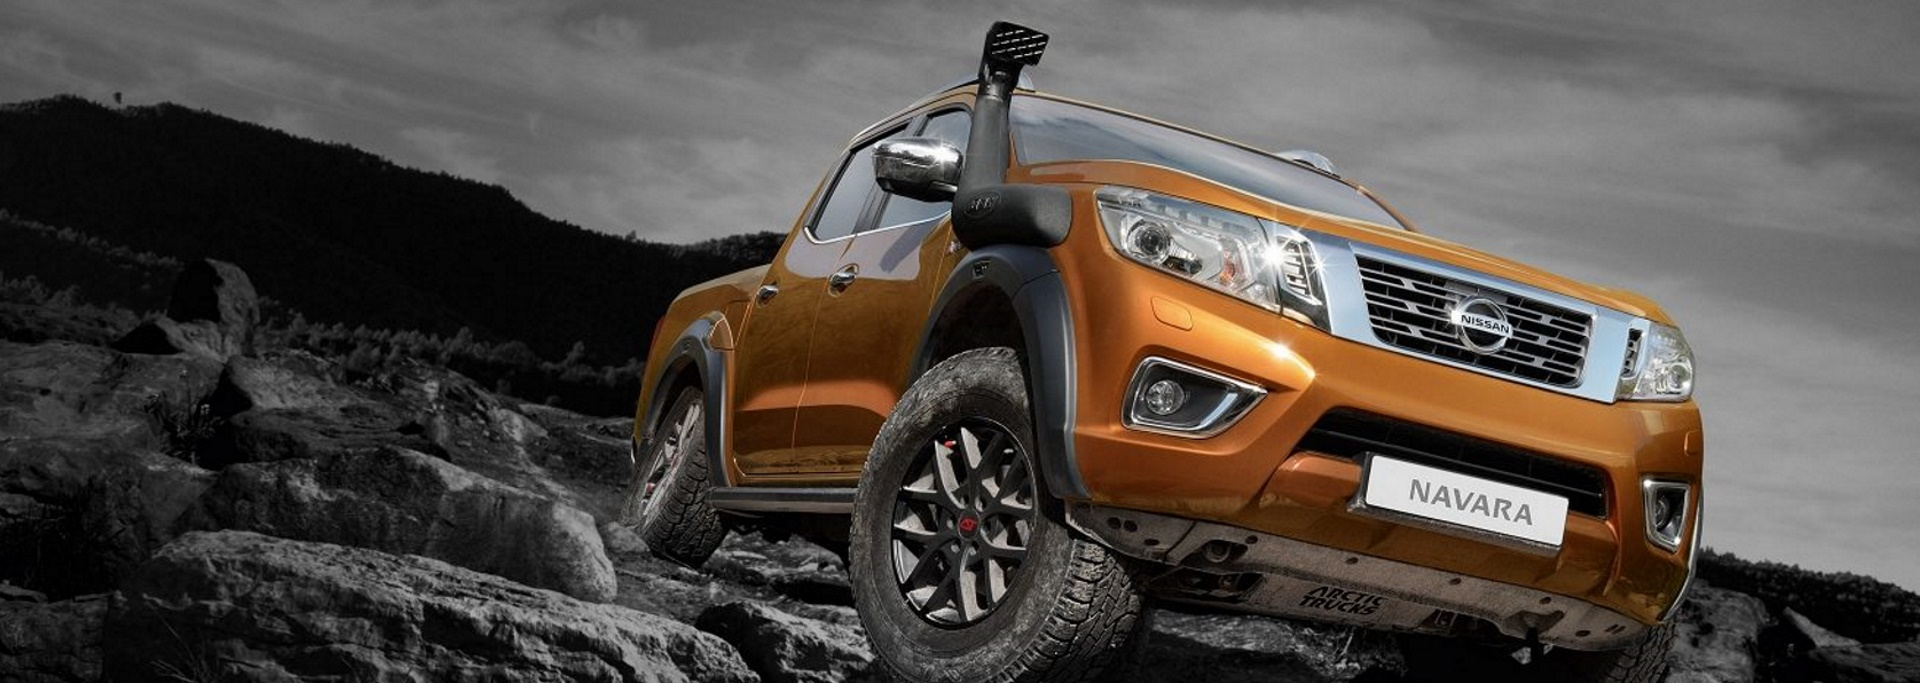 <h1>Navara Off-Roader AT32</h1>